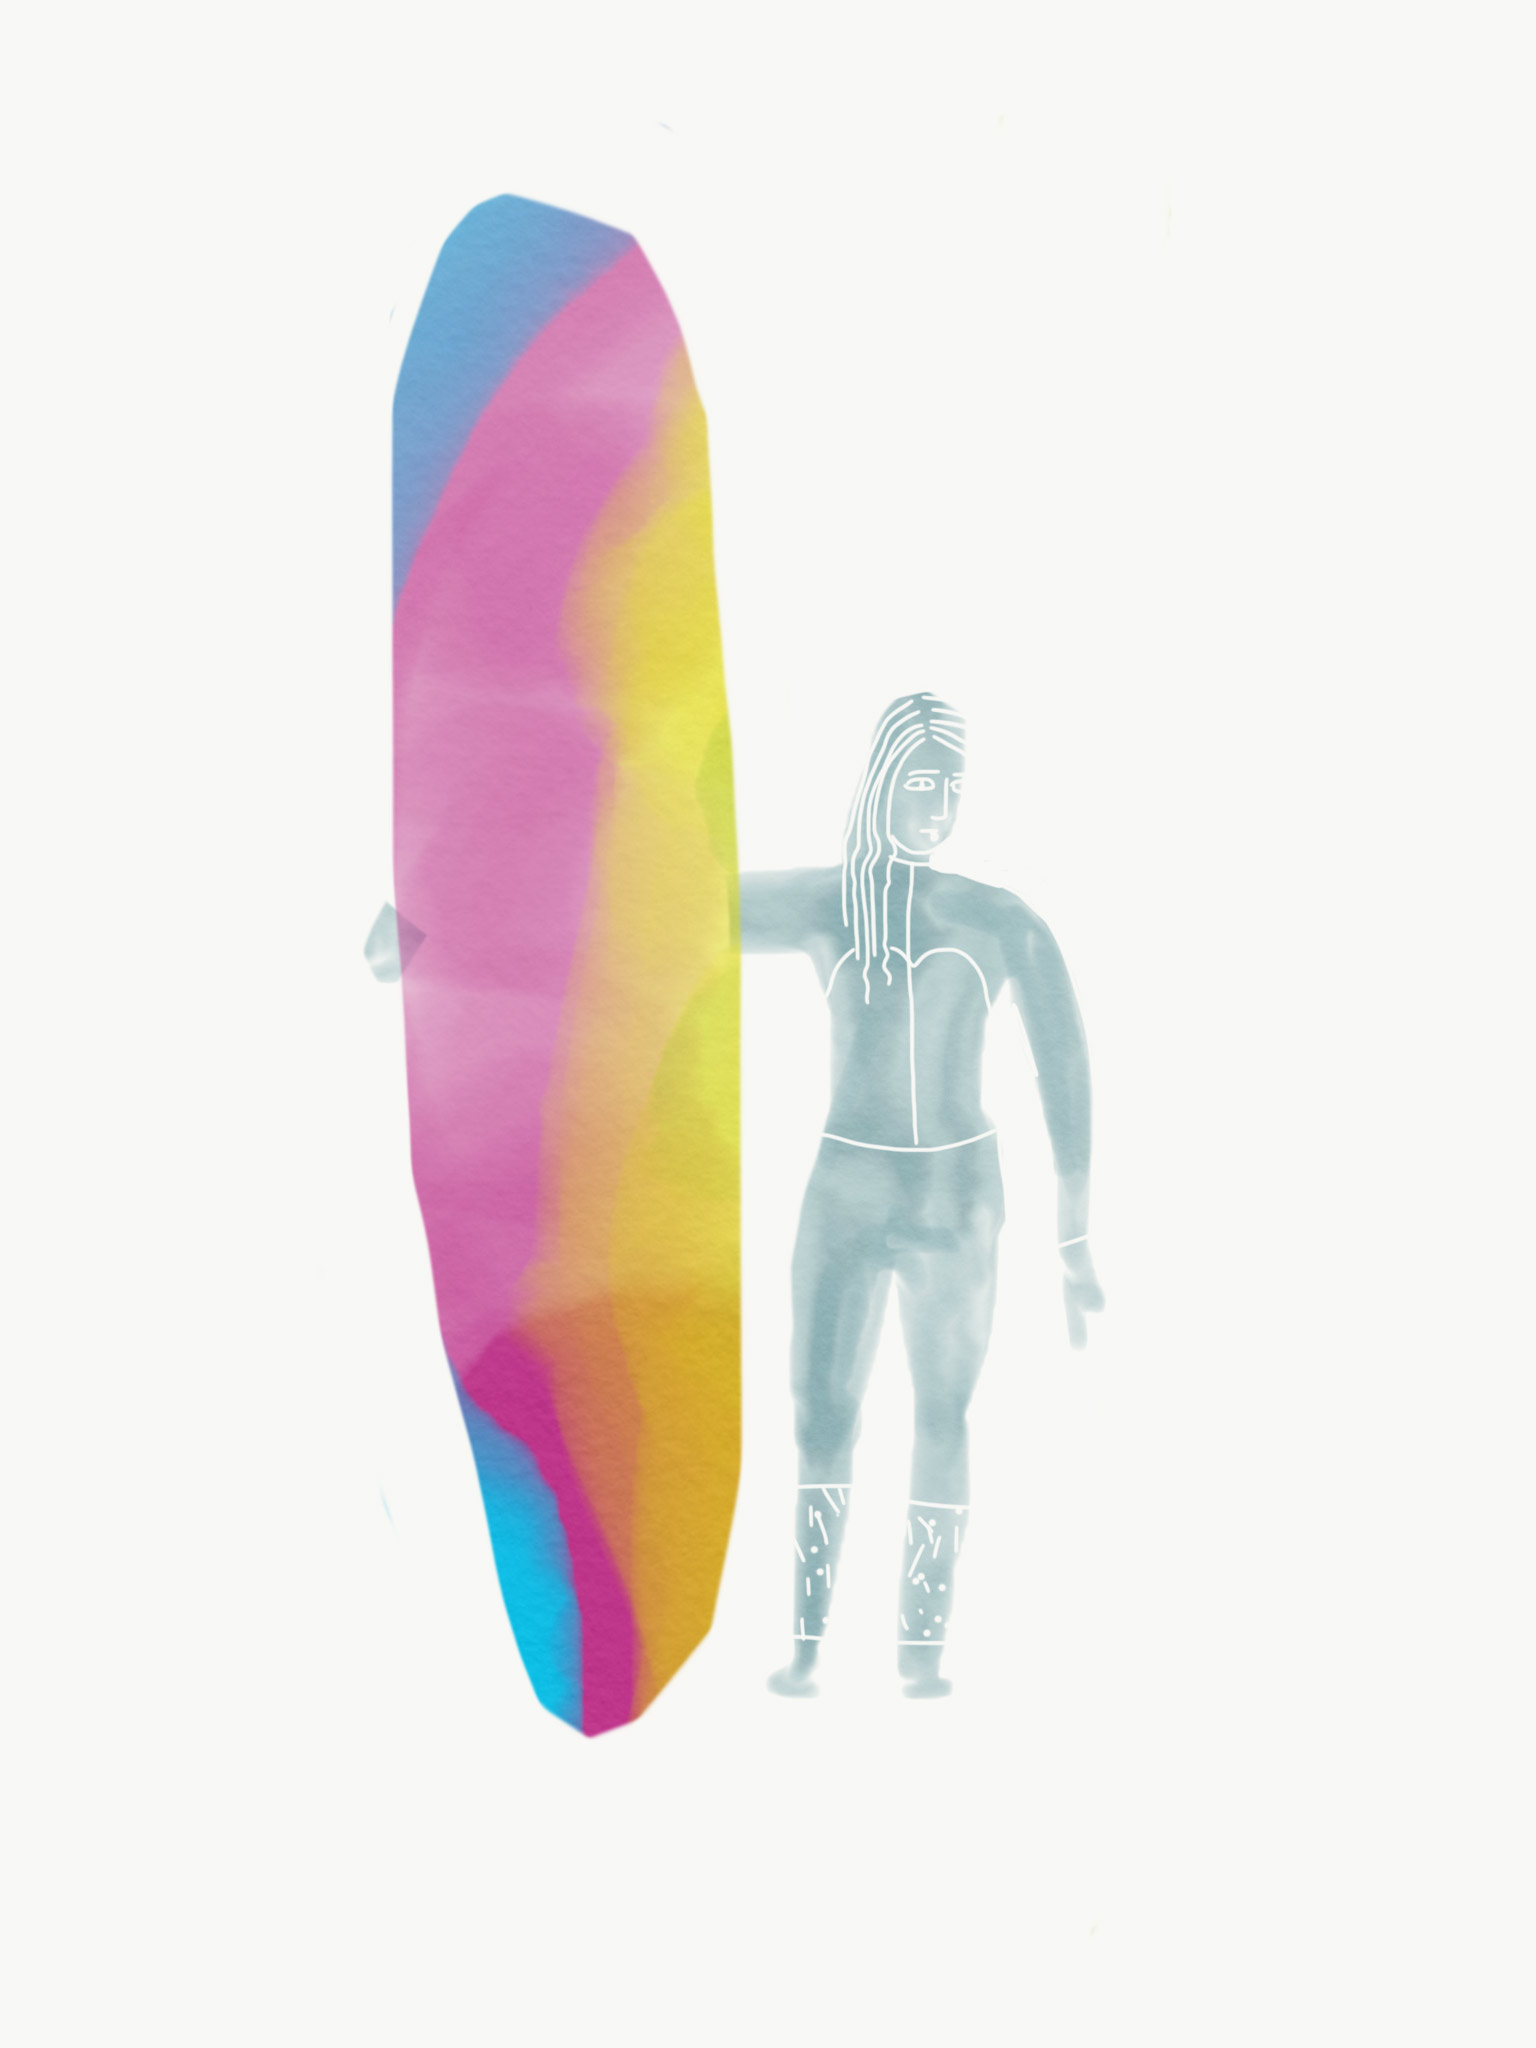 Jessica Findley and her Thomas Surfboard